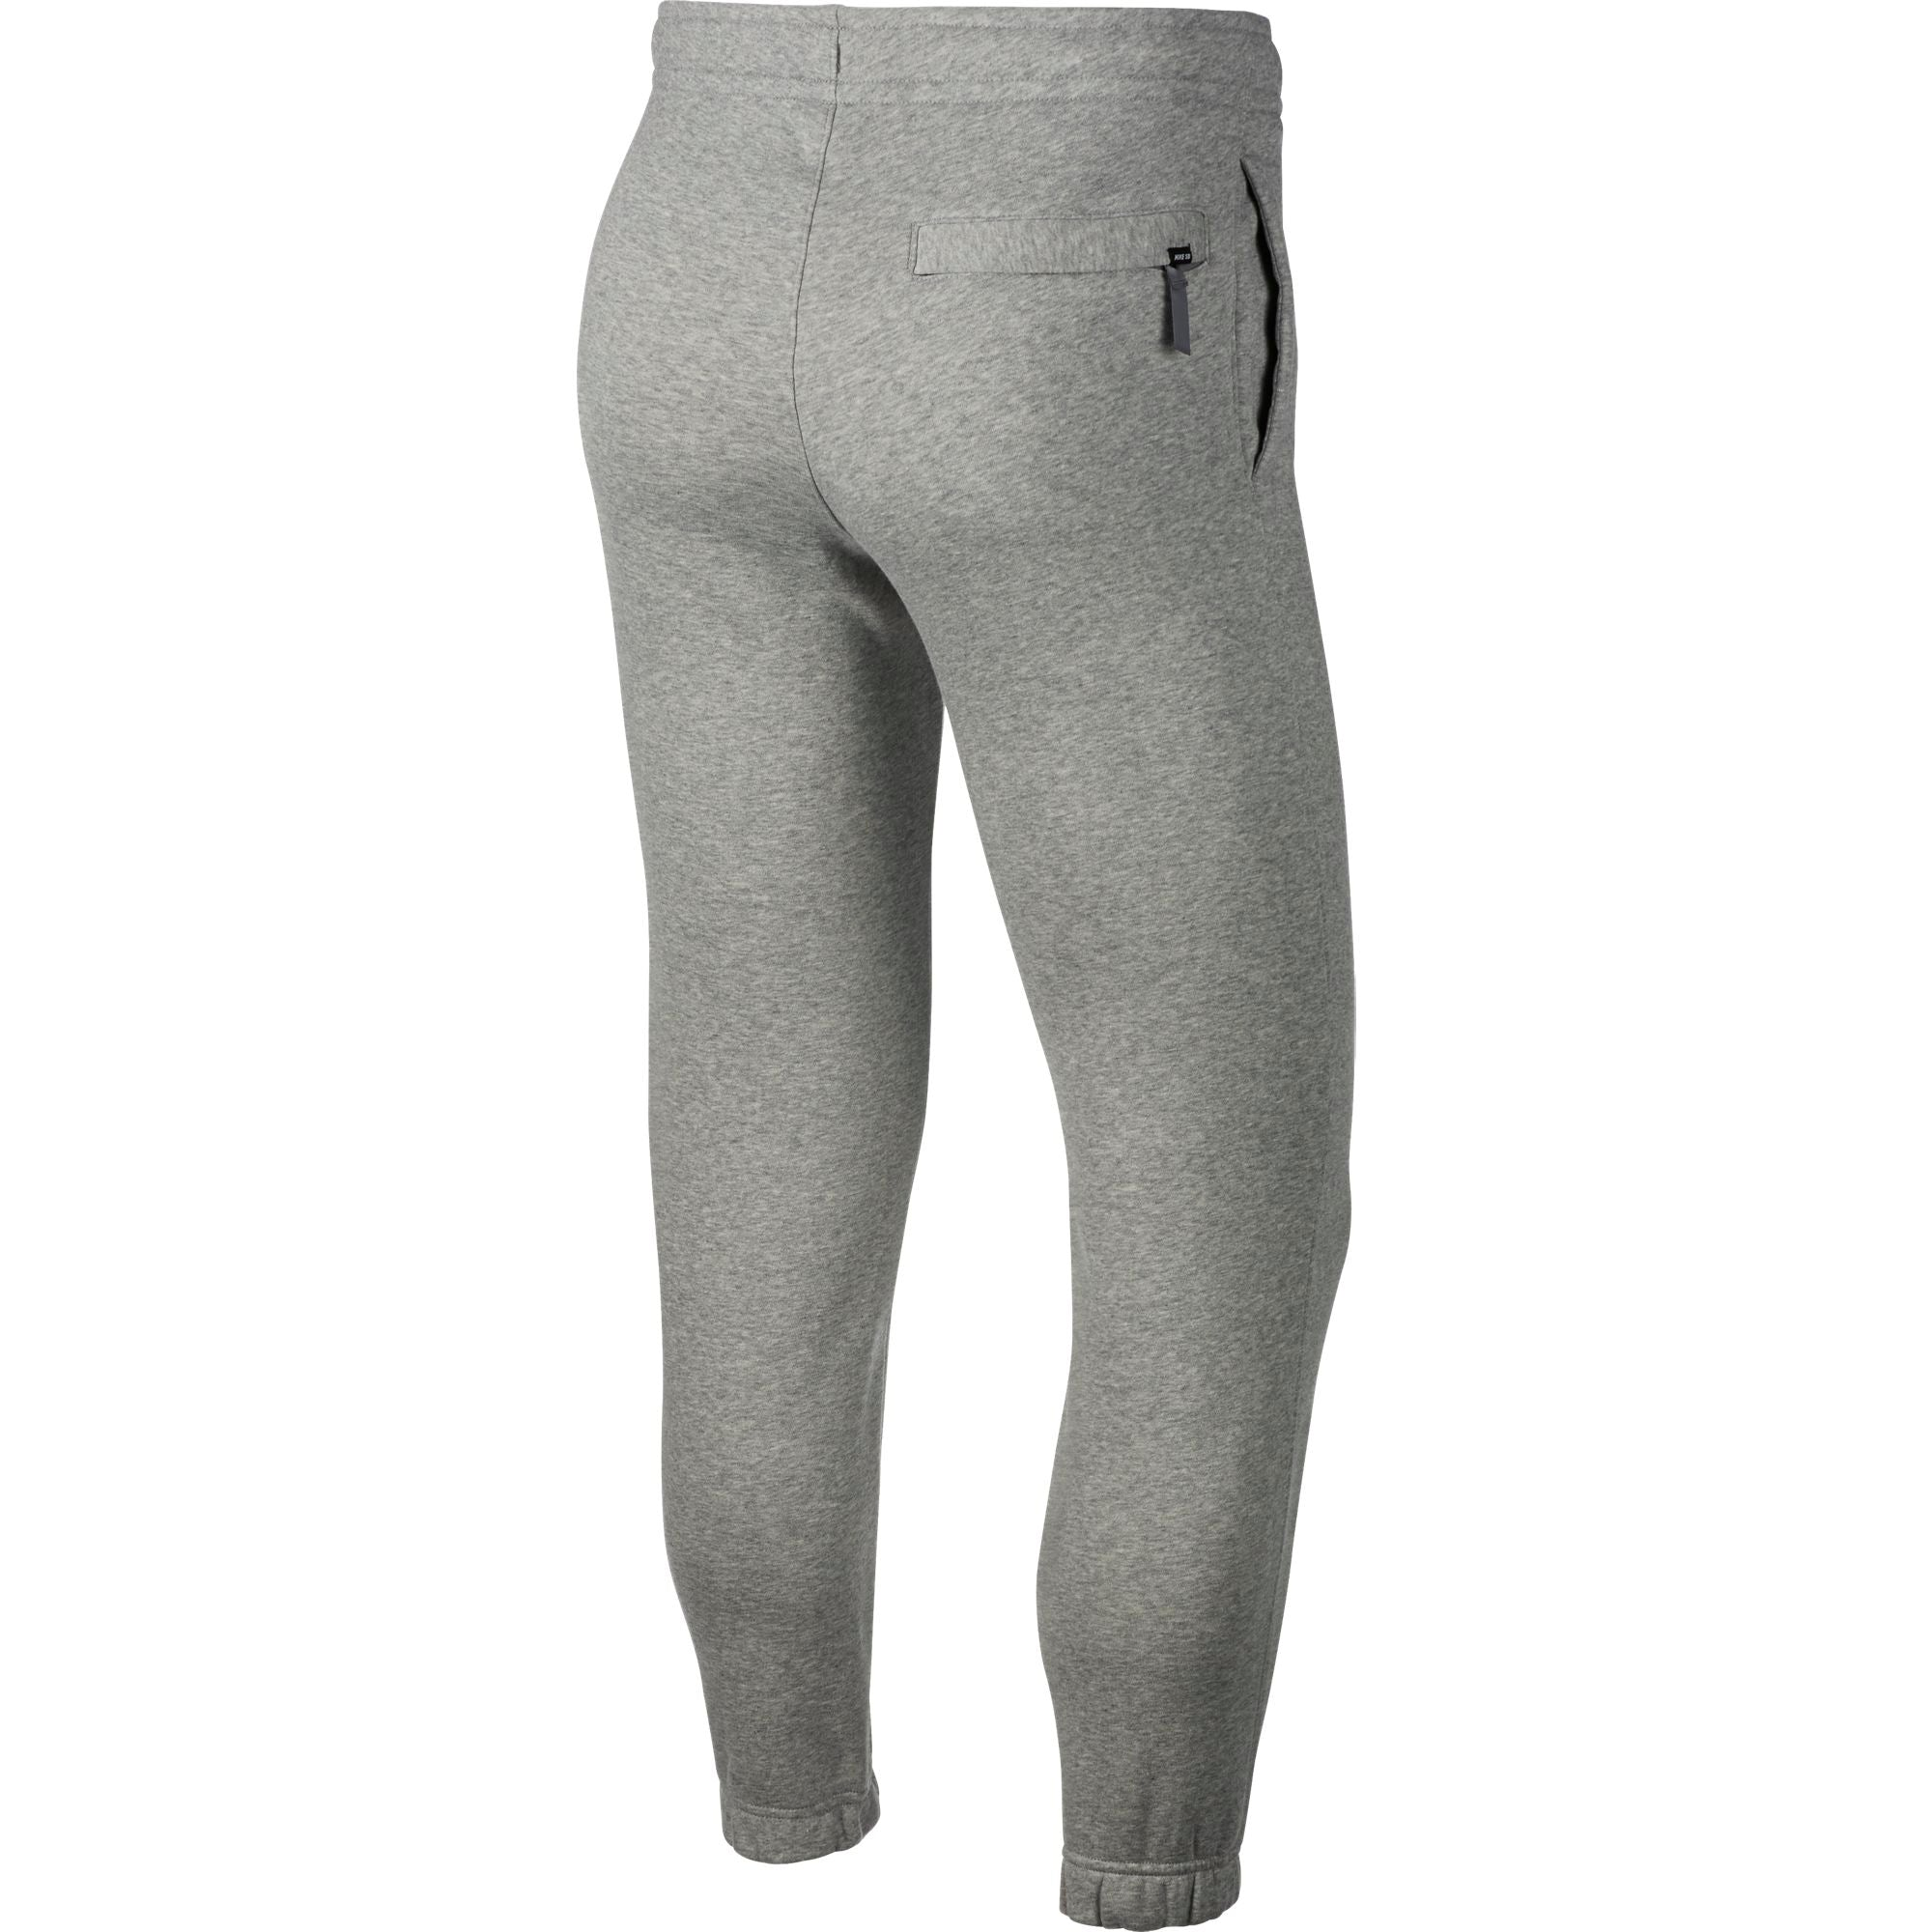 Icon Fleece Pants DK Grey Heather/Black